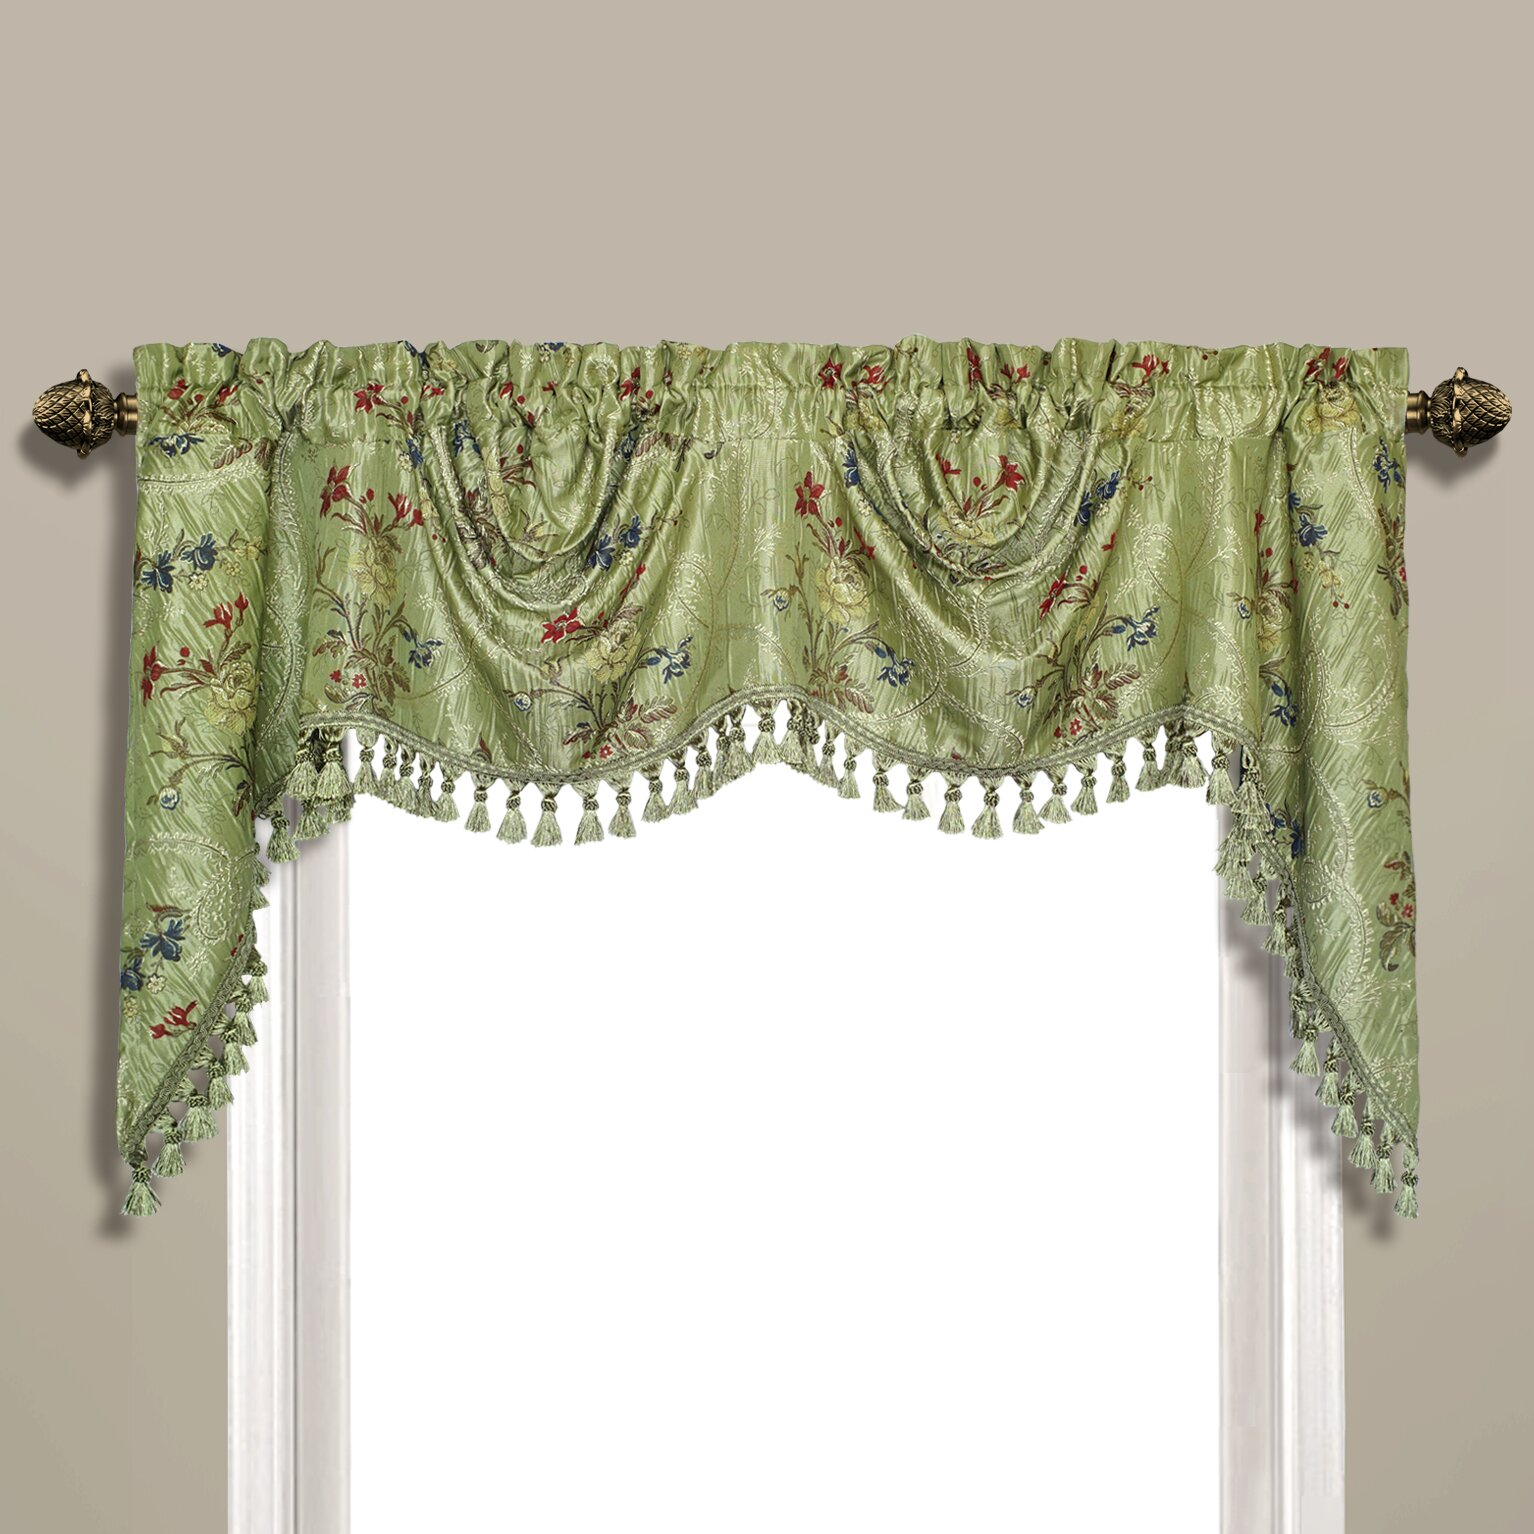 Black Sheer Curtains With Attached Valance